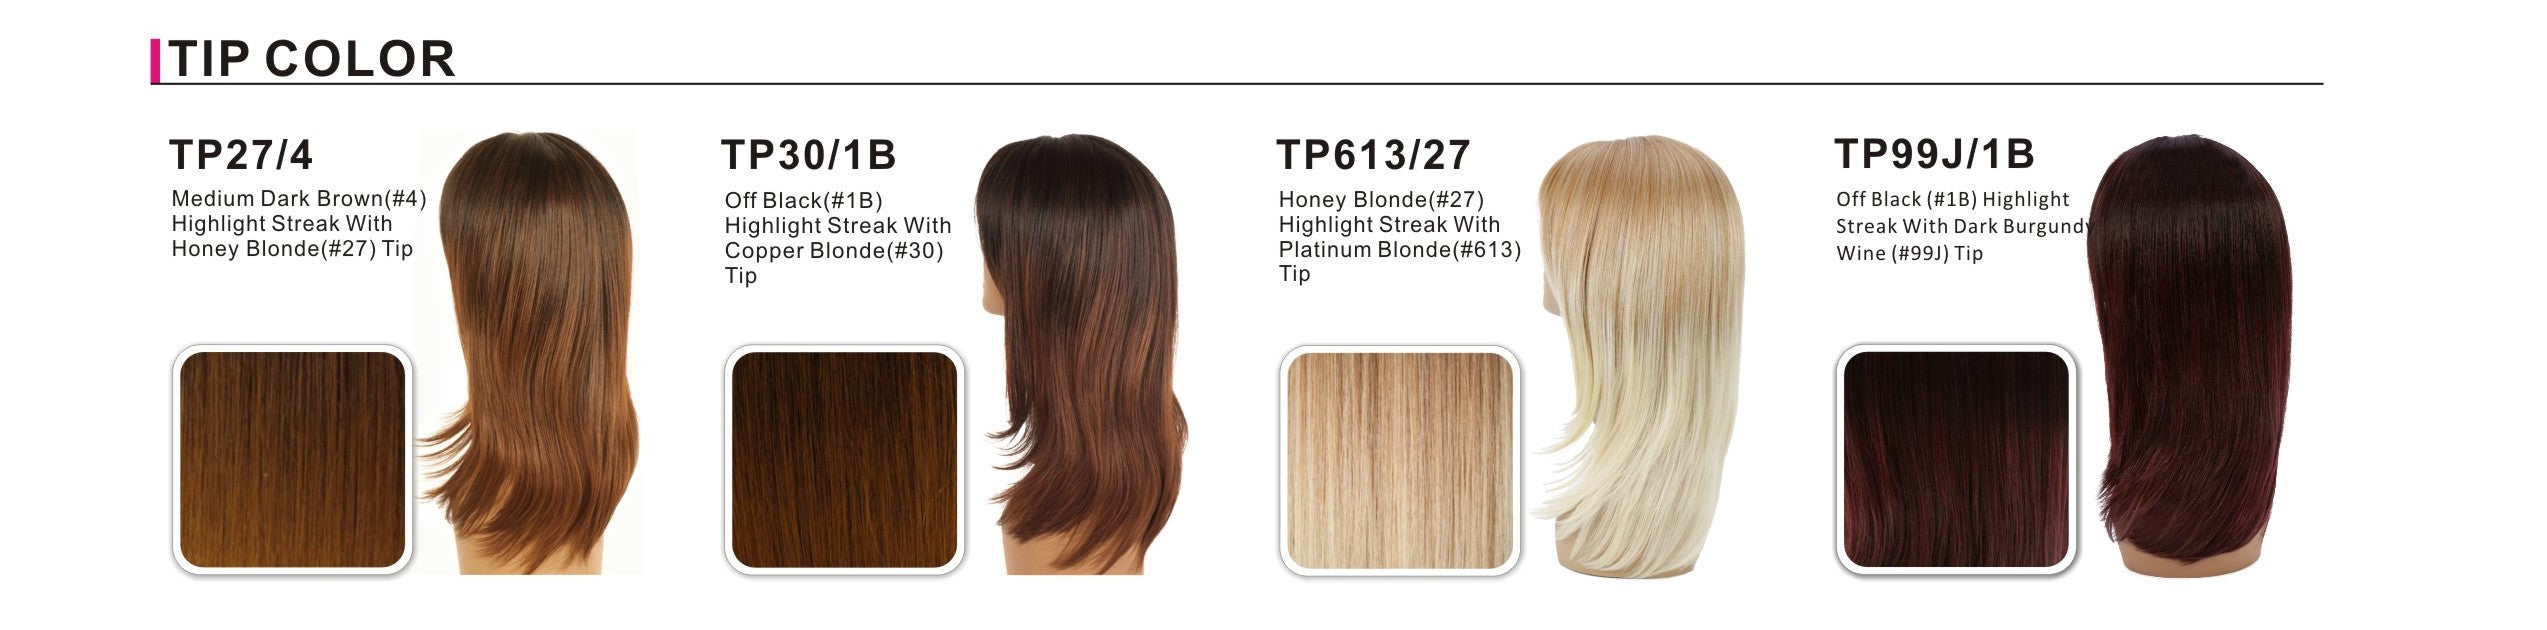 Tipped 		 TP27/4 	TP30/1B 	TP613/27 Medium Dark Brown (#4), Highlight Streak with Honey Blonde (#27) Tip 	Off Black (#1B) Highlight Streak with Copper Blonde (#30) Tip 	Honey Blonde (#27) Highlight Streak with Platinum Blonde (#613) Tip